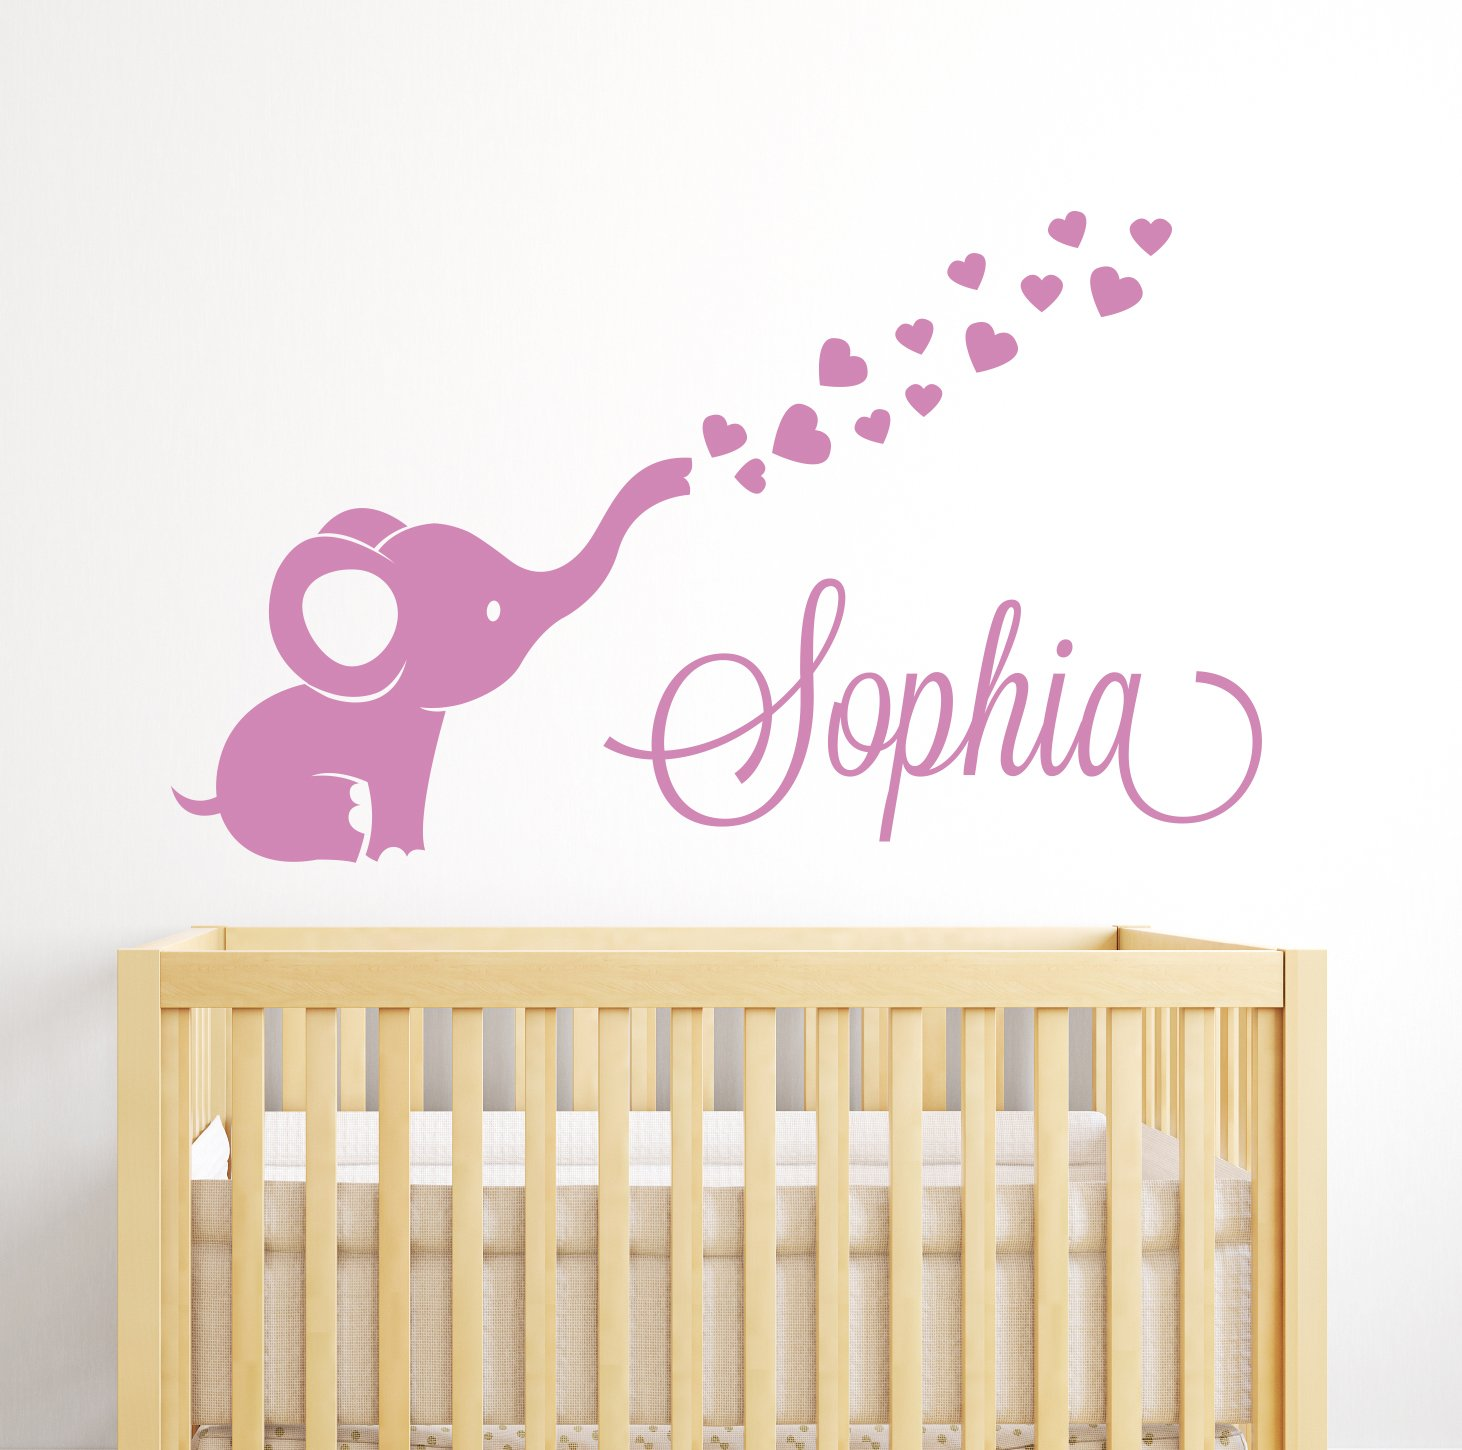 Custom Elephant Hearts Name Wall Decal - Elephant Baby Room Decor - Nursery Wall Decals - Elephant Vinyl Sticker for Girls